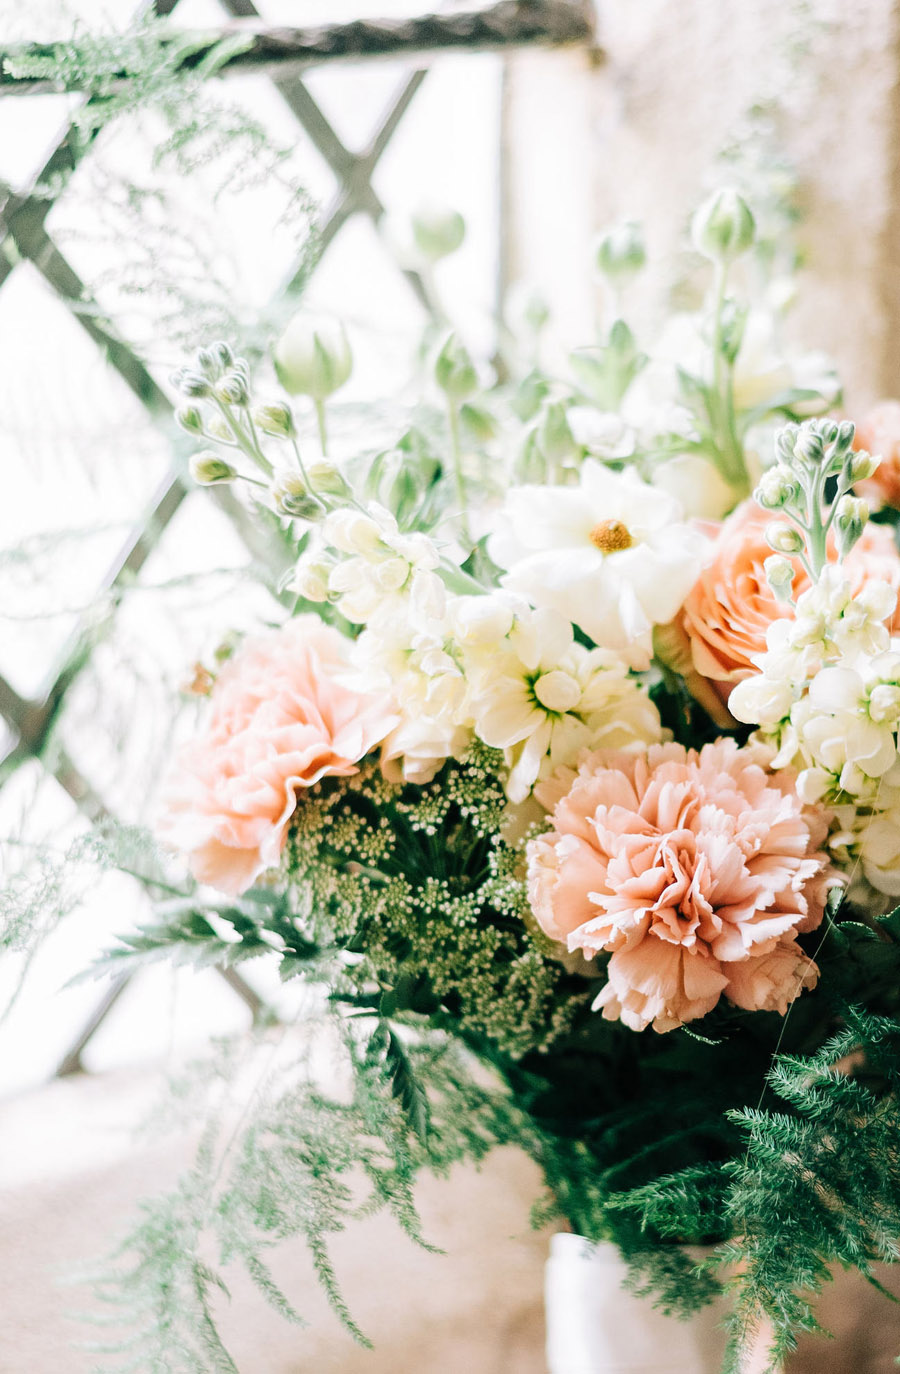 coral and neutral colour palette for a stunning wedding look with Corky and Prince, image credit Rachel Jane Photography (1)